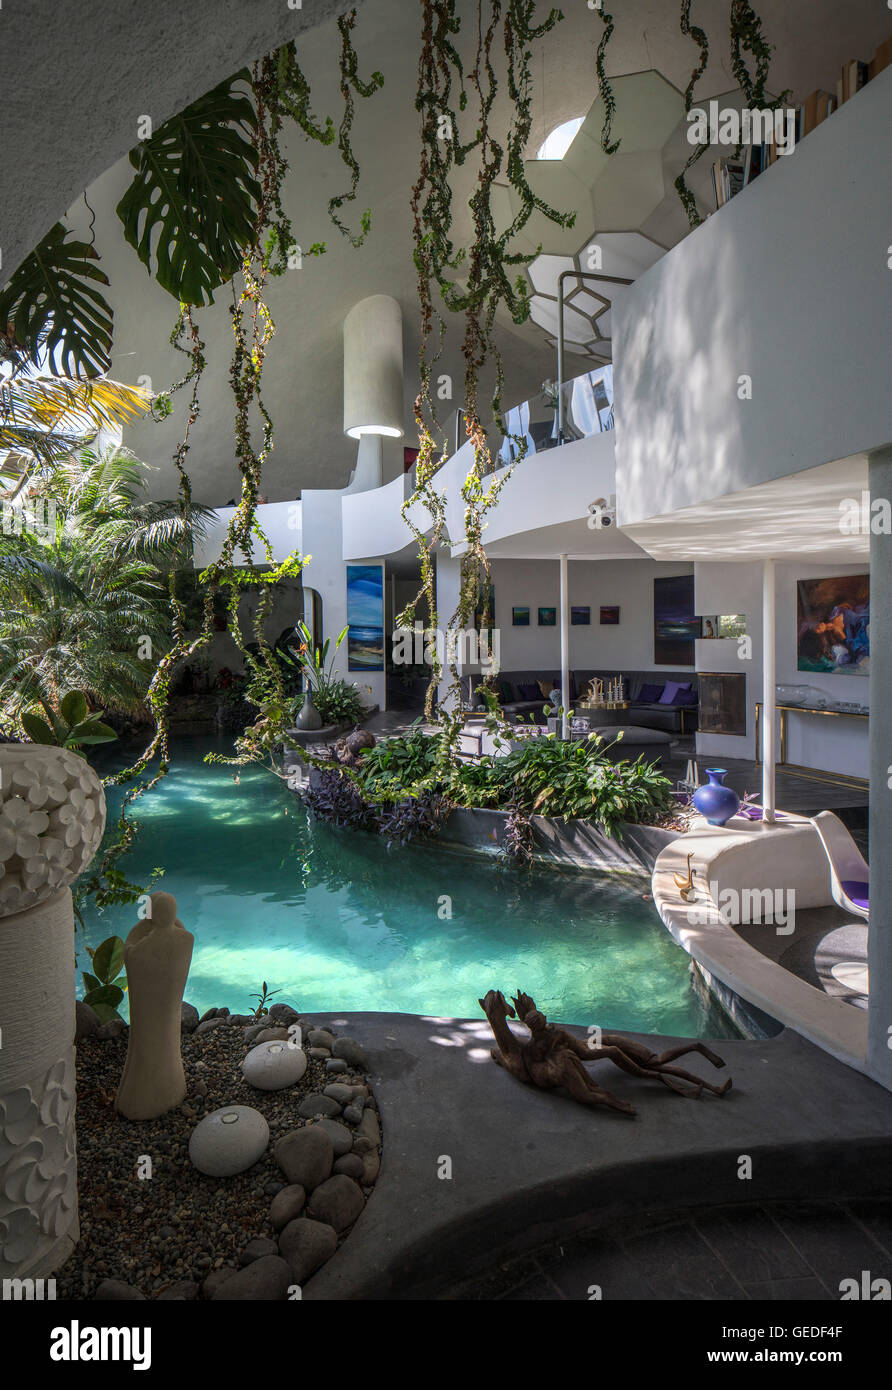 Pool balcony eco dome peka peka new zealand architect for Pool design new zealand